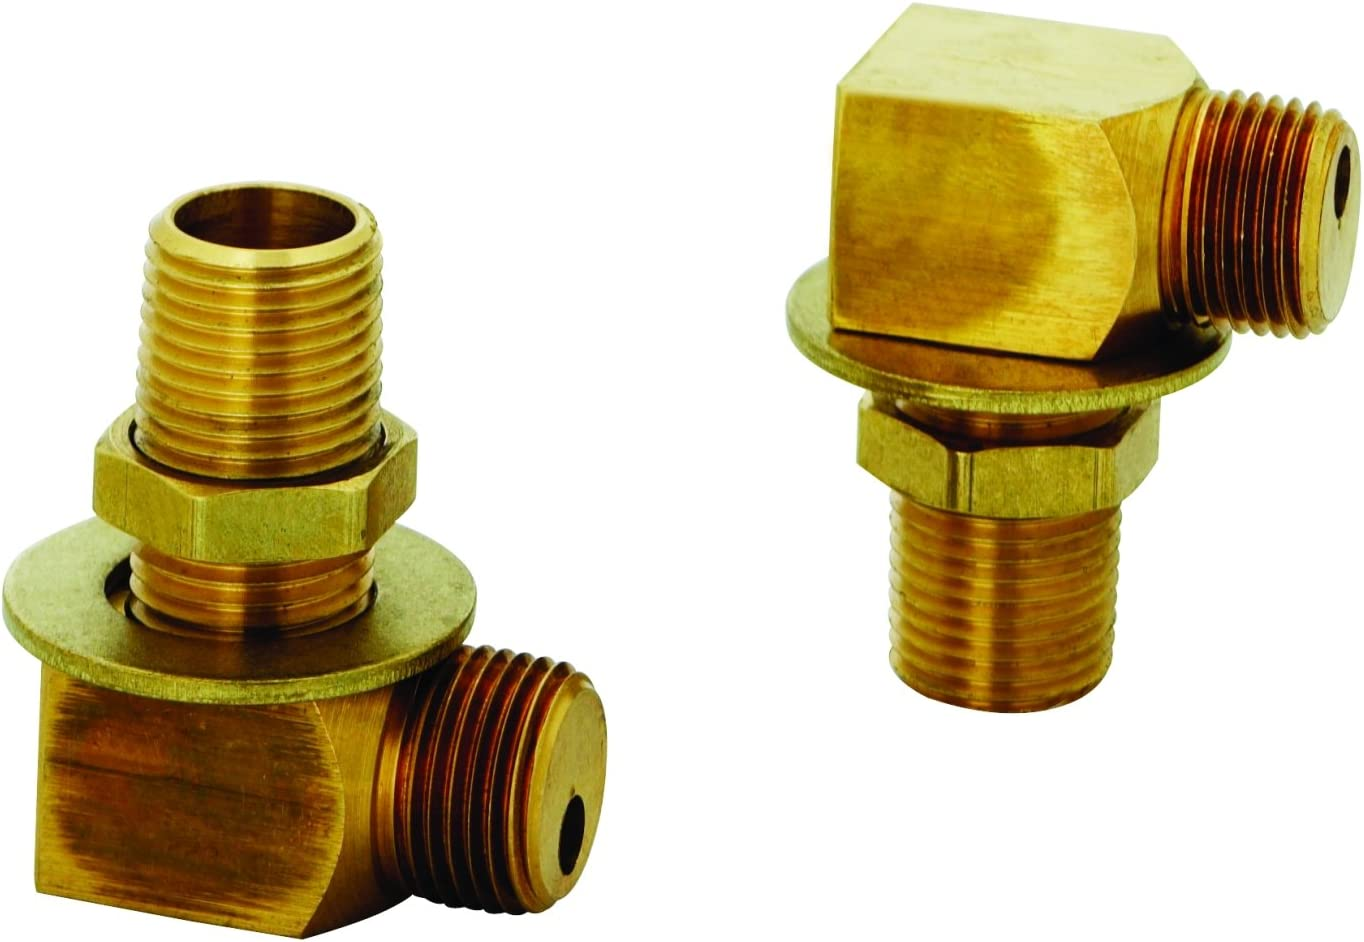 Amazon Com T S Brass B 0230 K Installation Kit For B 0230 Style Faucets Two Short Elbows Nipples Lock Nuts And Washers That Provide 1 2 Npt Male Inlet And Outlet When Assembled Industrial Scientific